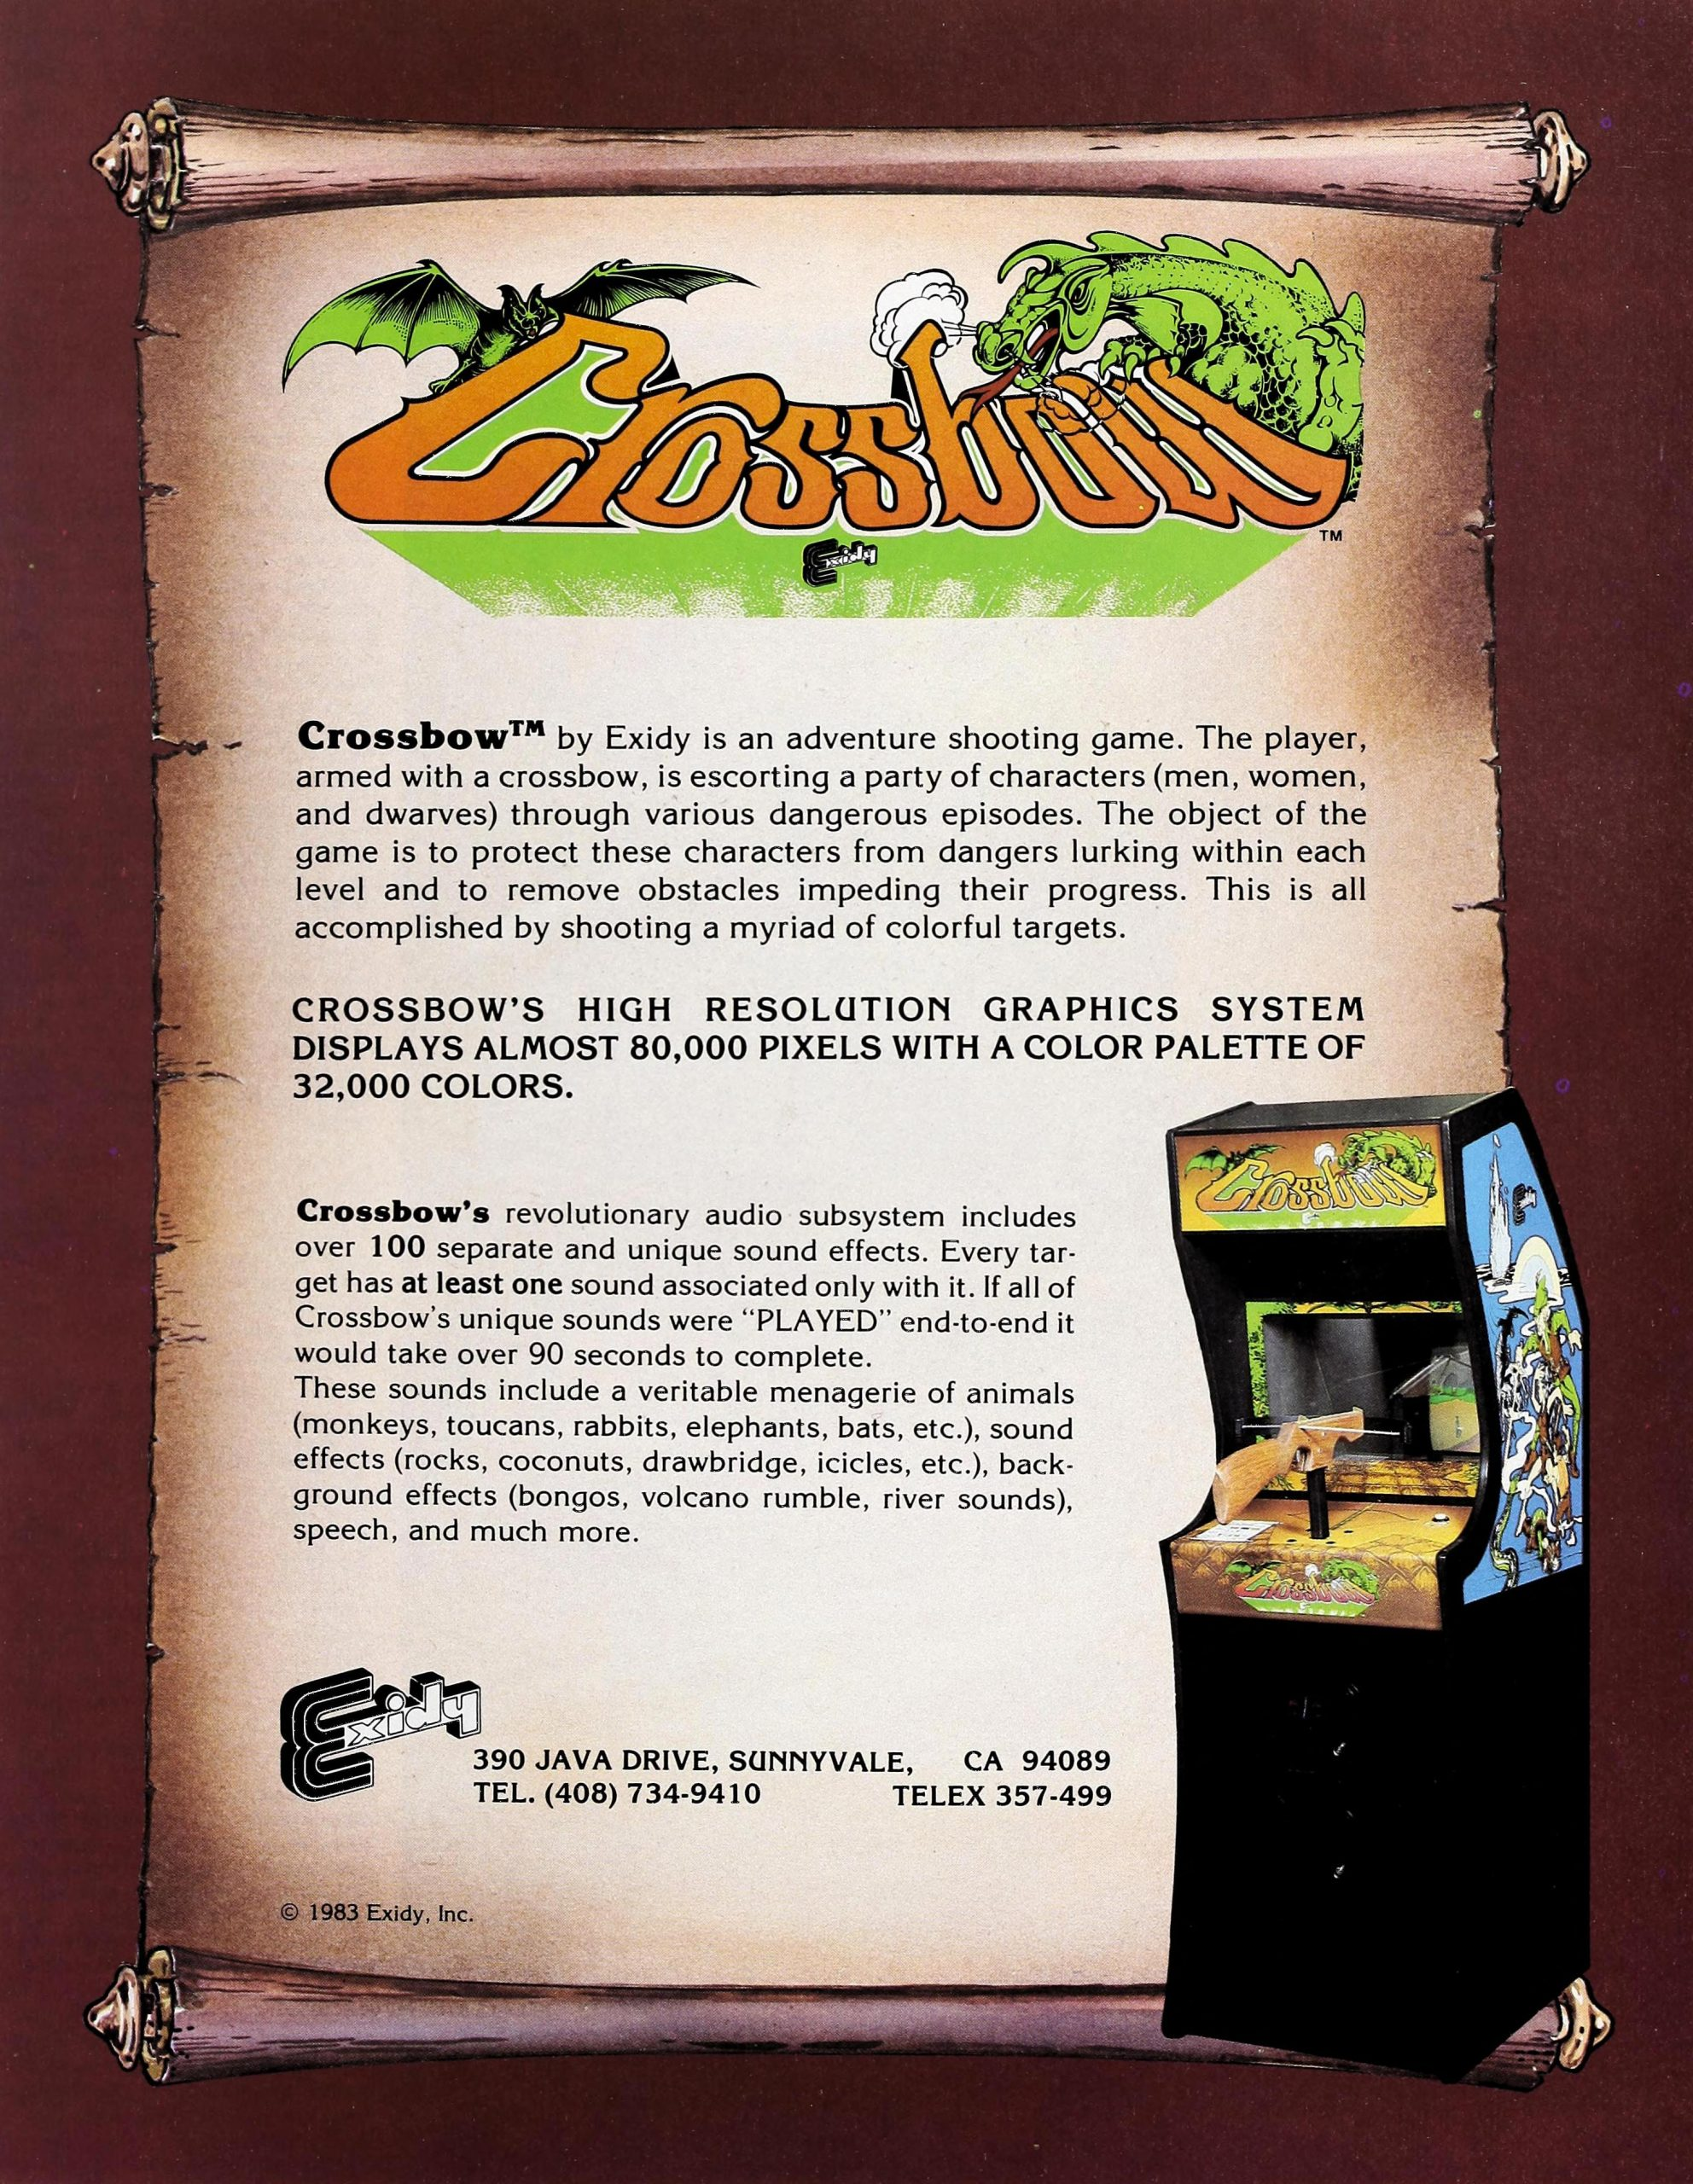 Crossbow, an arcade video game by Exidy